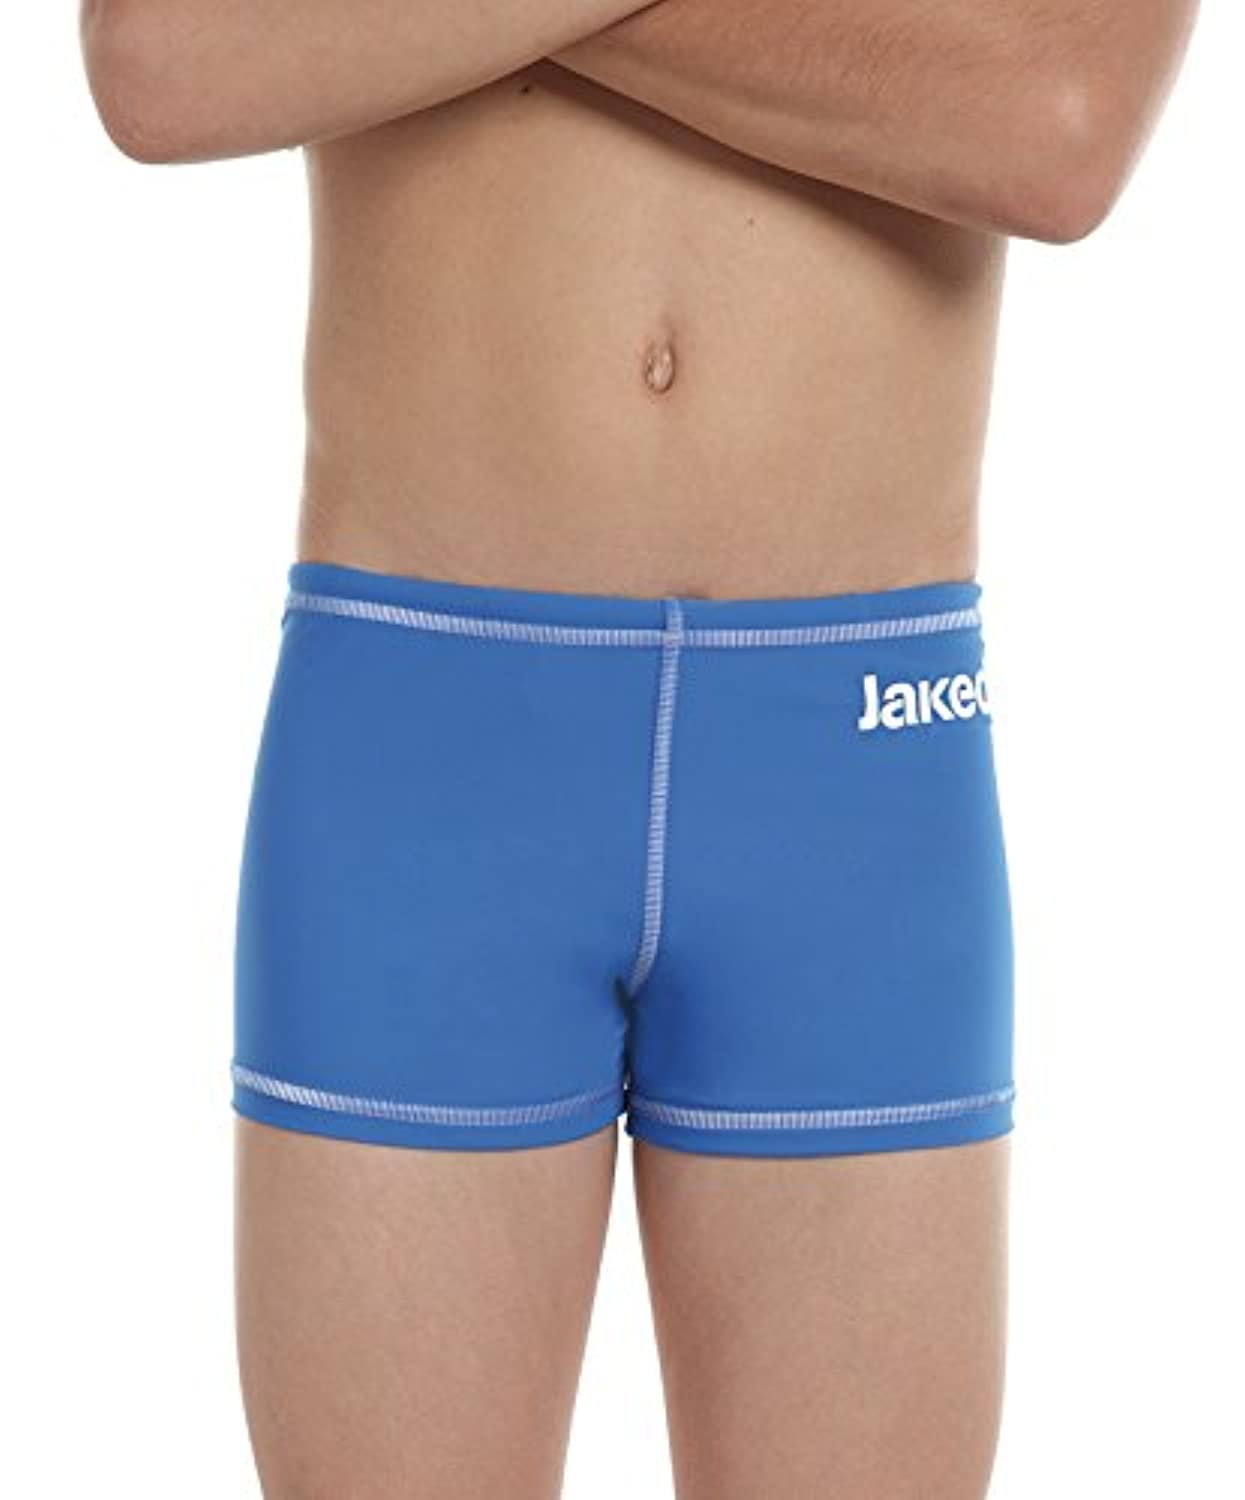 JakedドラッグBrief Firenze